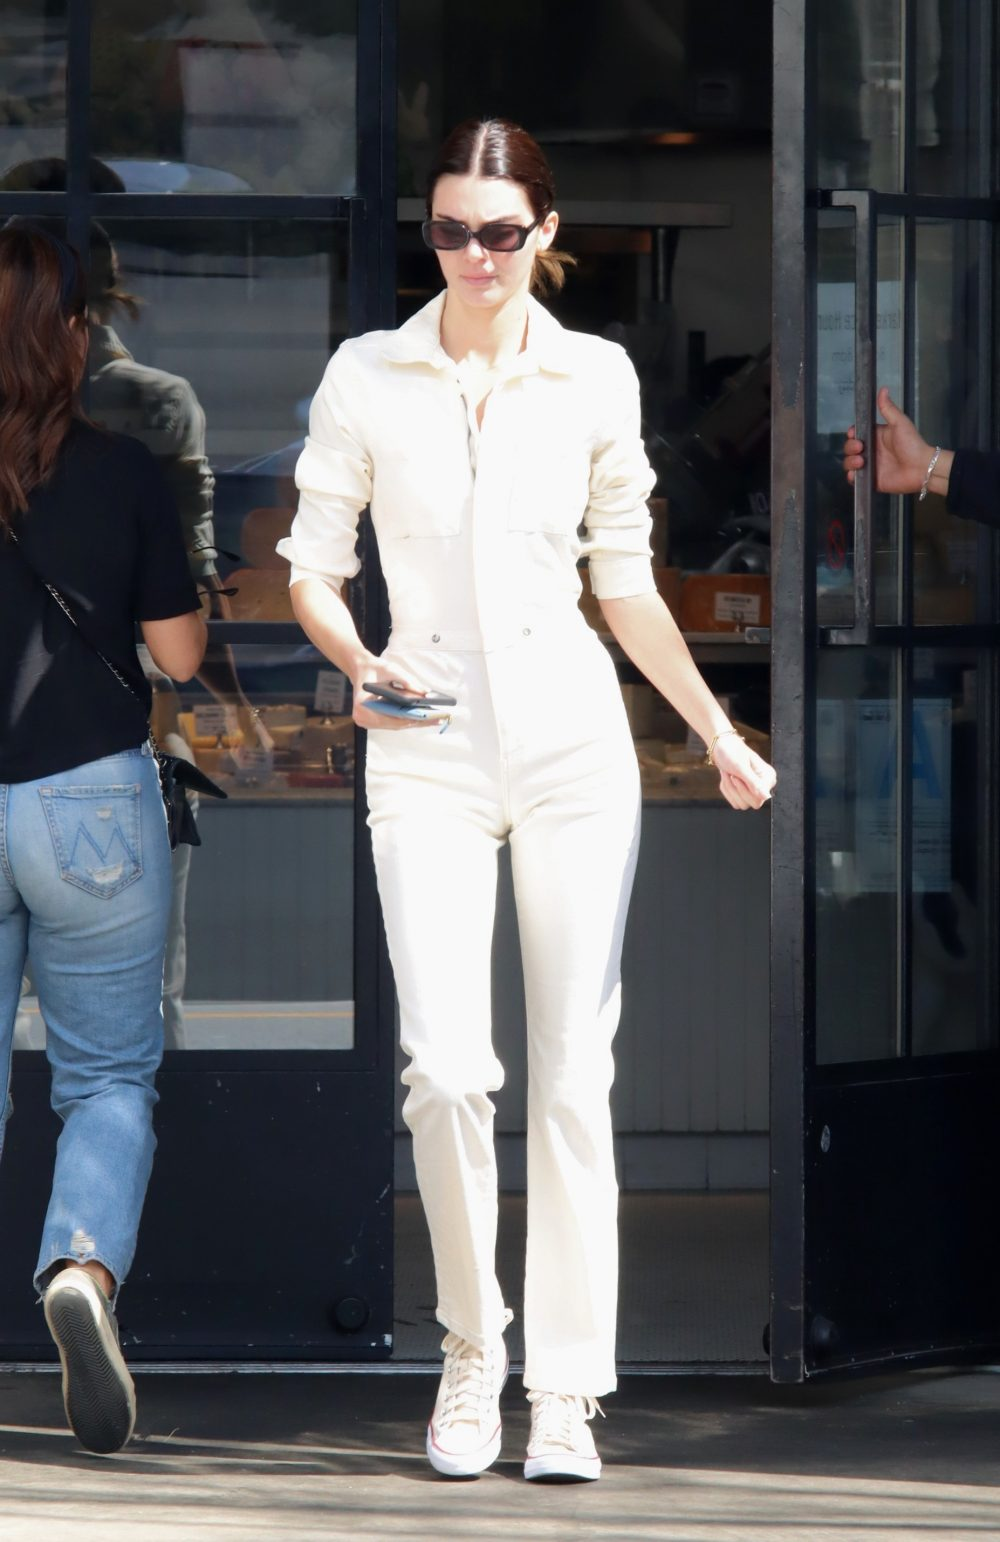 Kendall Jenner seen in a onesie after morning coffee run at Joan's on Third